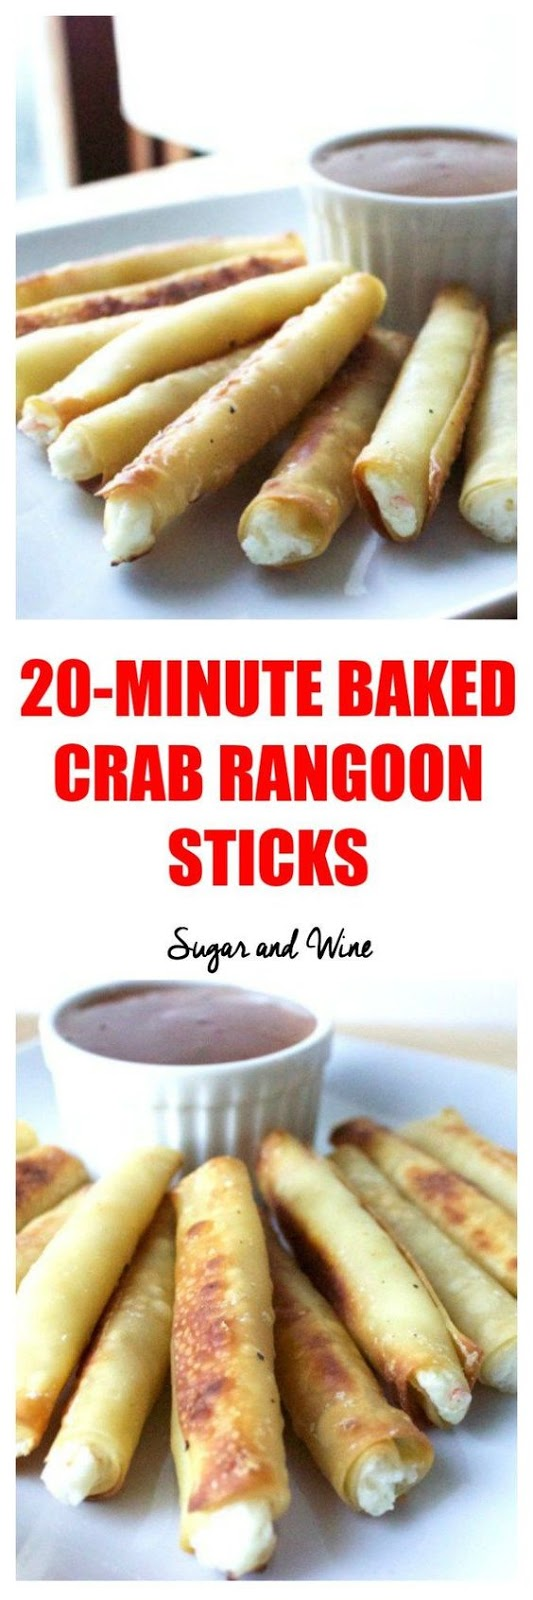 ★★★★☆ 7561 ratings | 20-MINUTE BAKED CRAB RANGOON STICKS #HEALTHYFOOD #EASYRECIPES #DINNER #LAUCH #DELICIOUS #EASY #HOLIDAYS #RECIPE #20MINUTE #BAKED #CRAB #RANGOON #STICKS